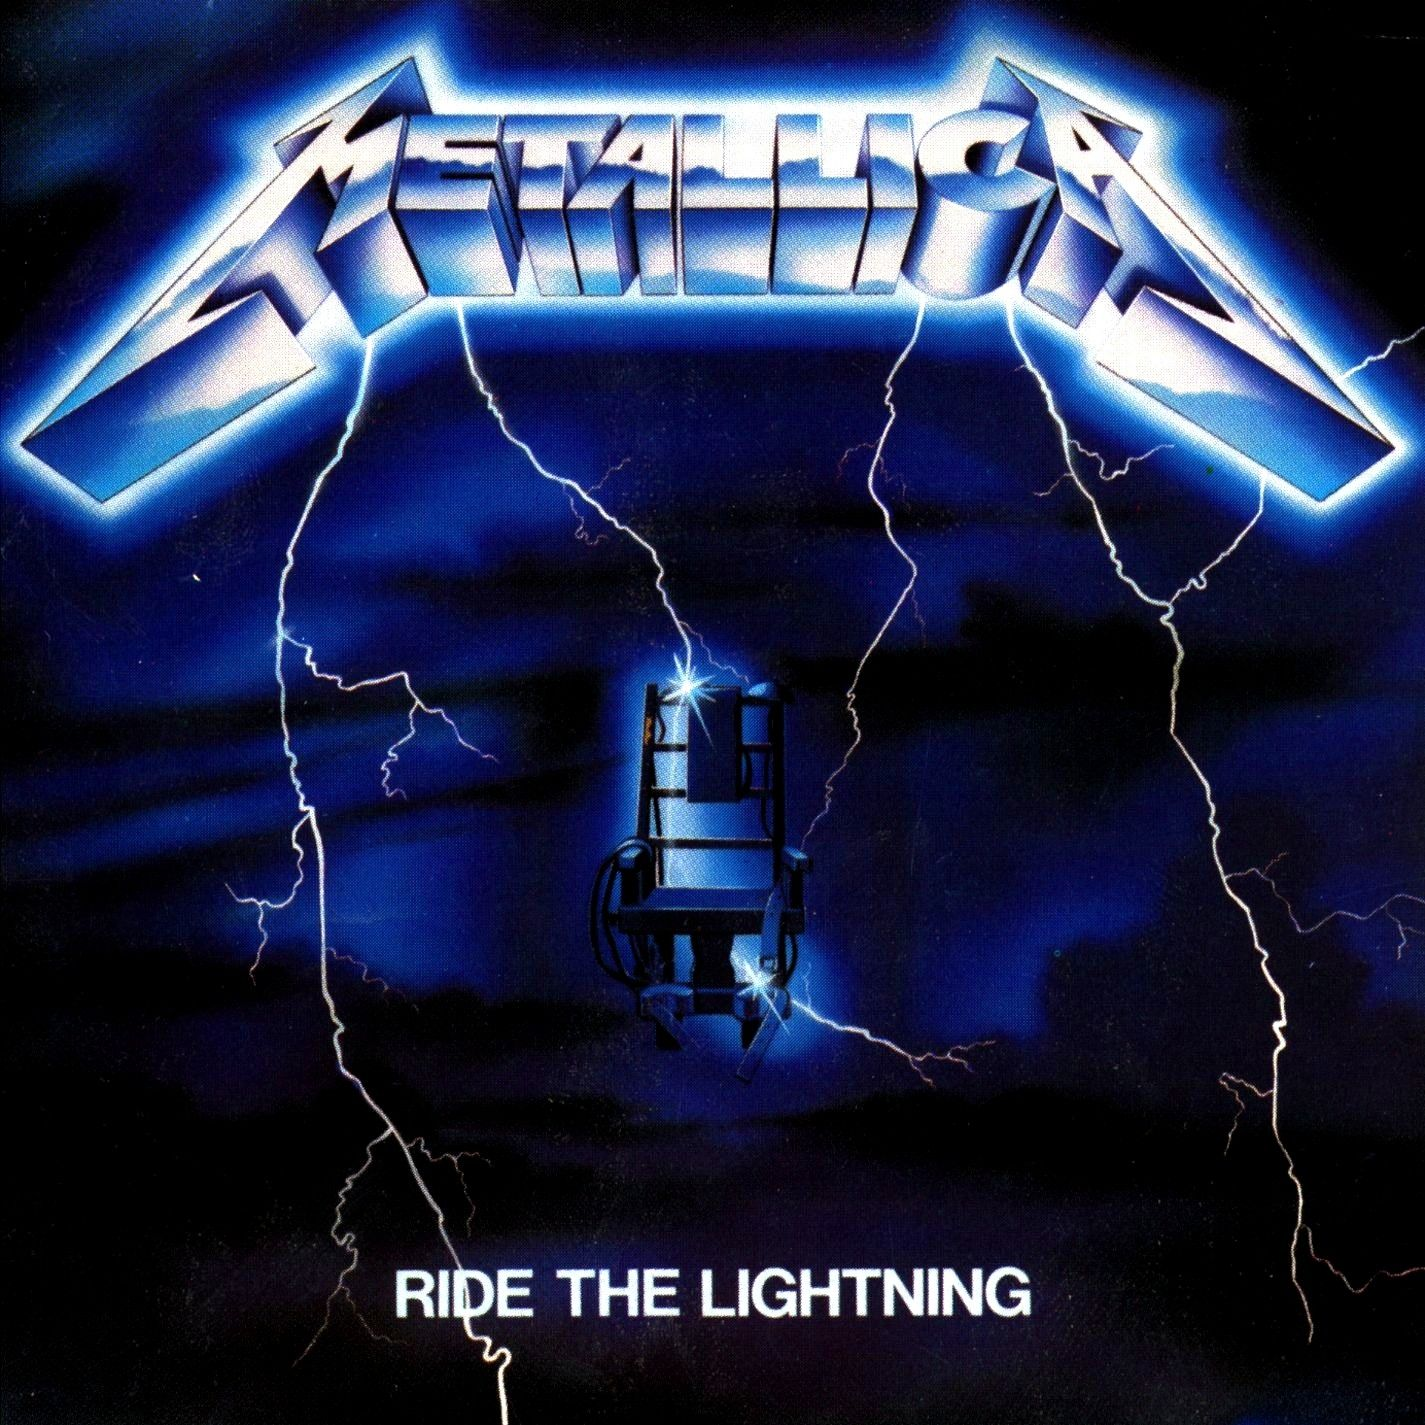 Domingo de Diseño: Ride the Lightning